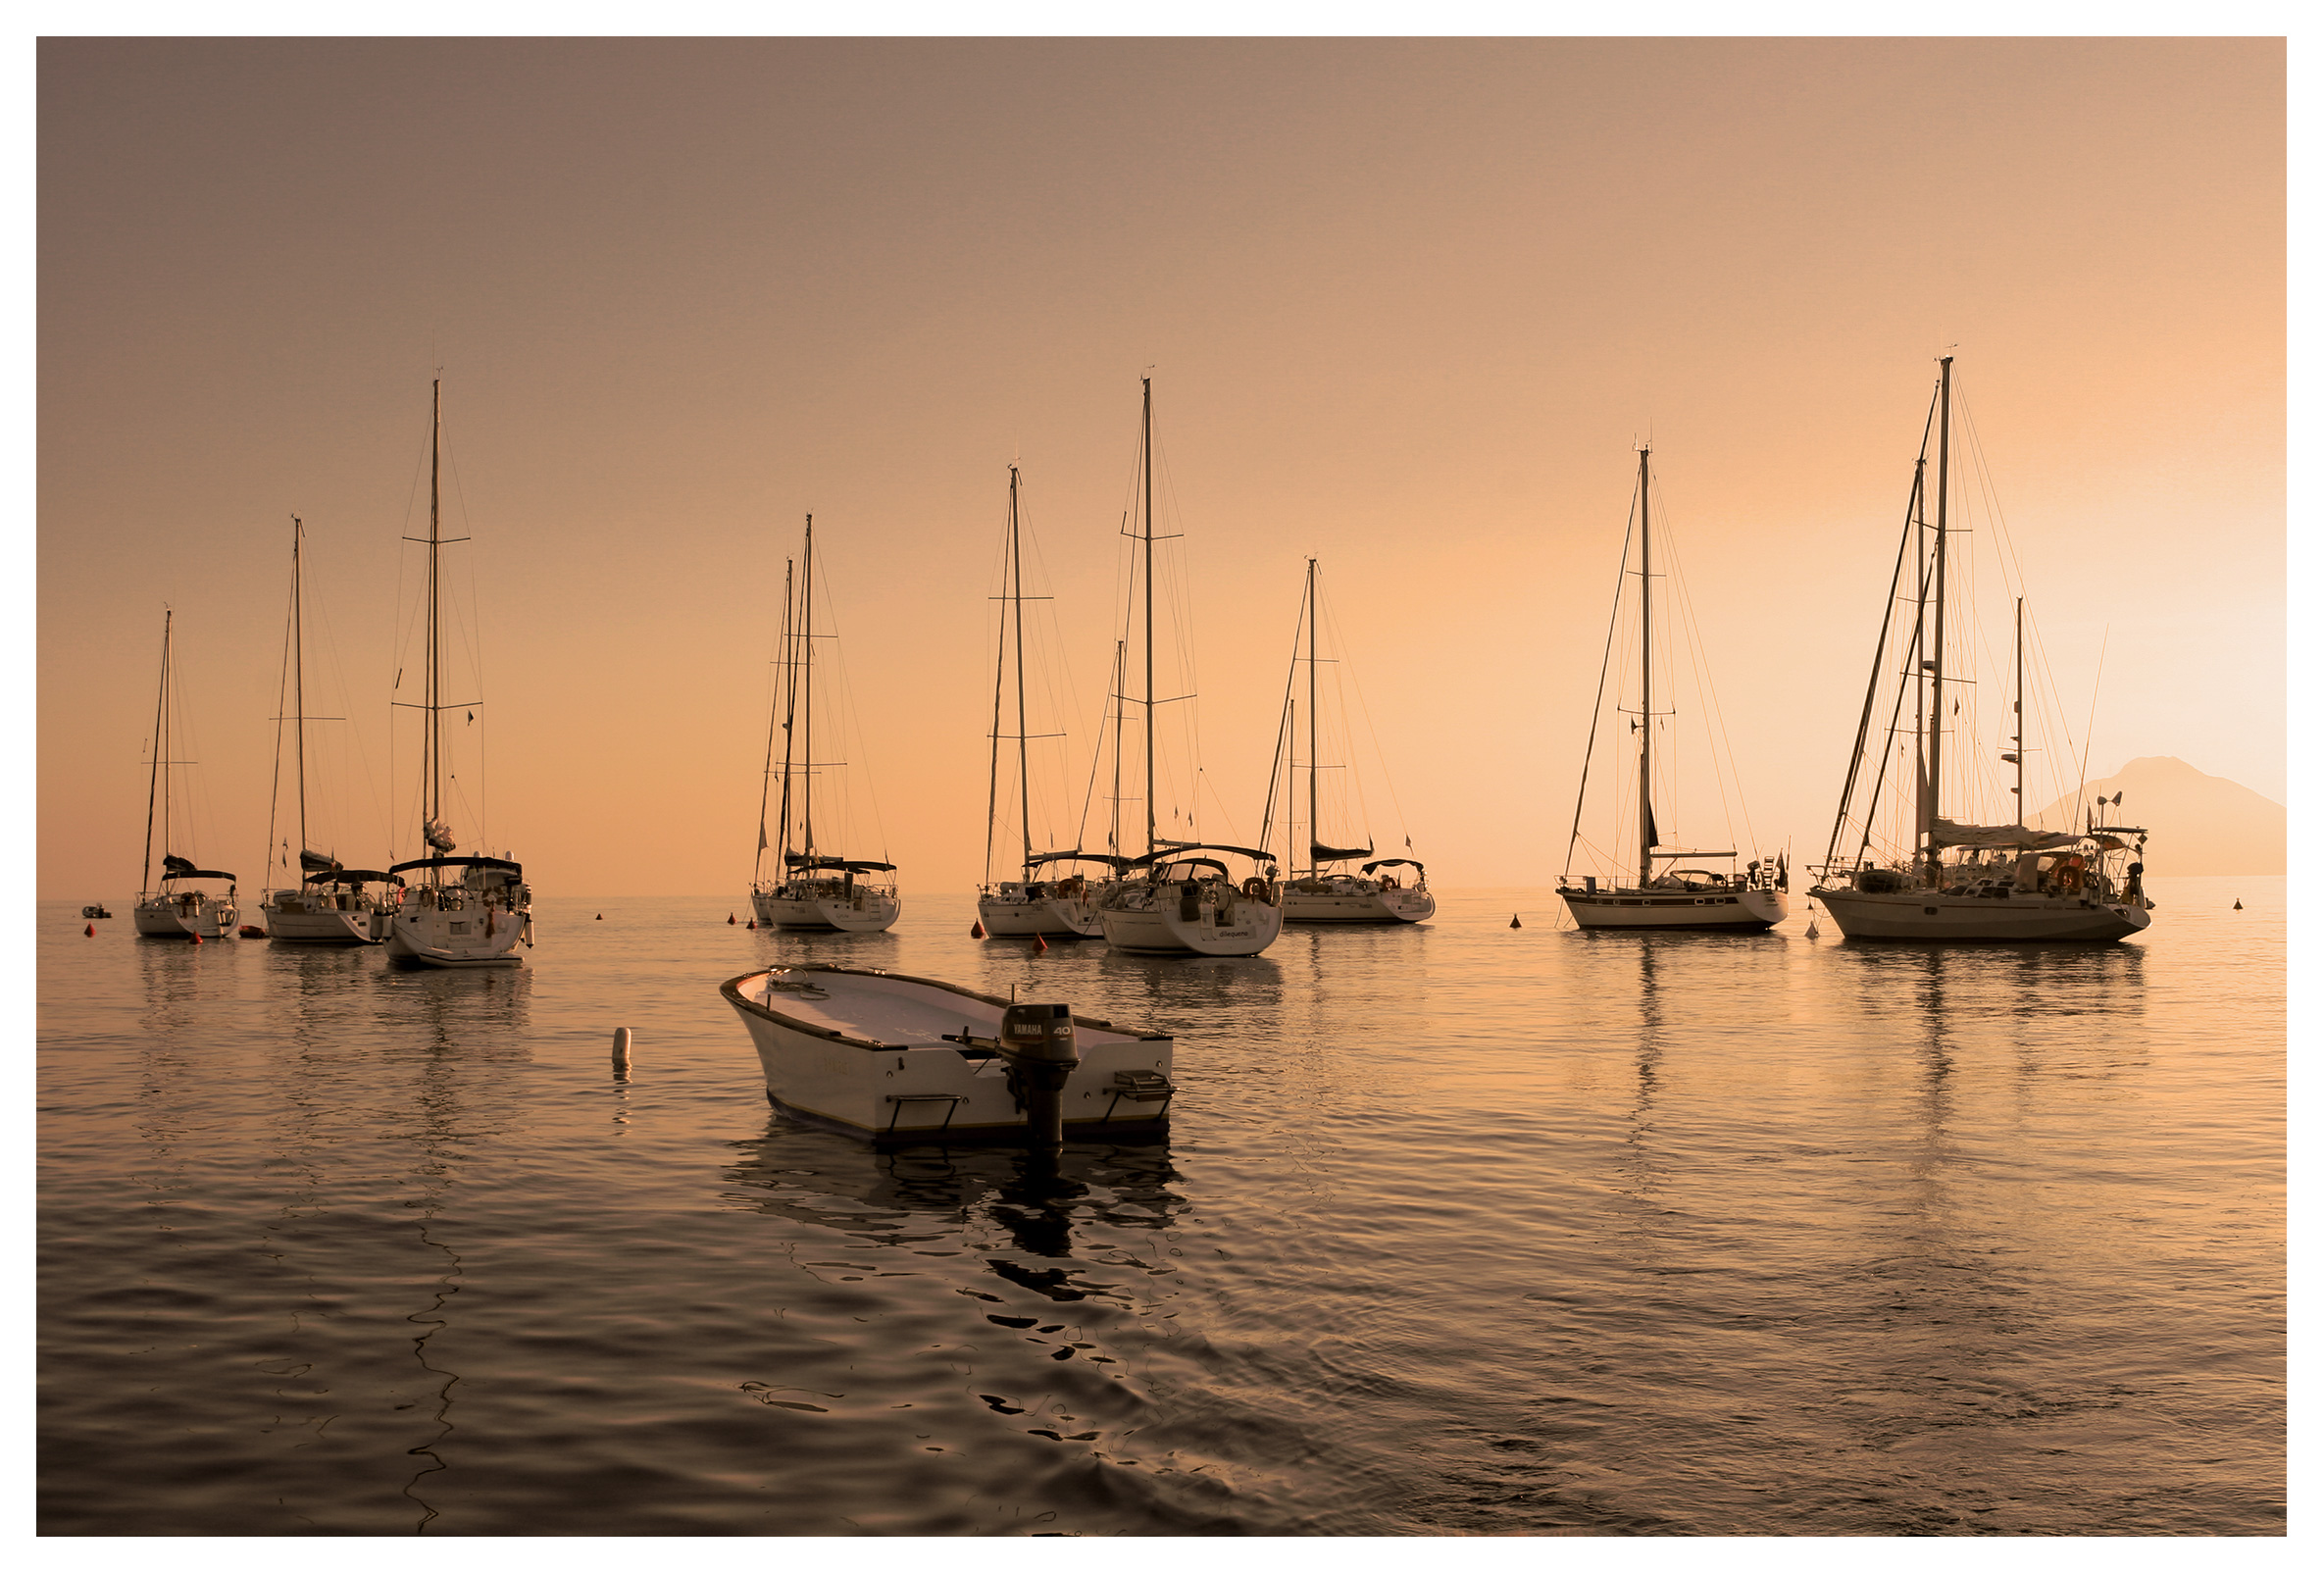 Yachting photography: Sailing yachts moored in the sunset off Panarea, Aeolian islands, Sicily